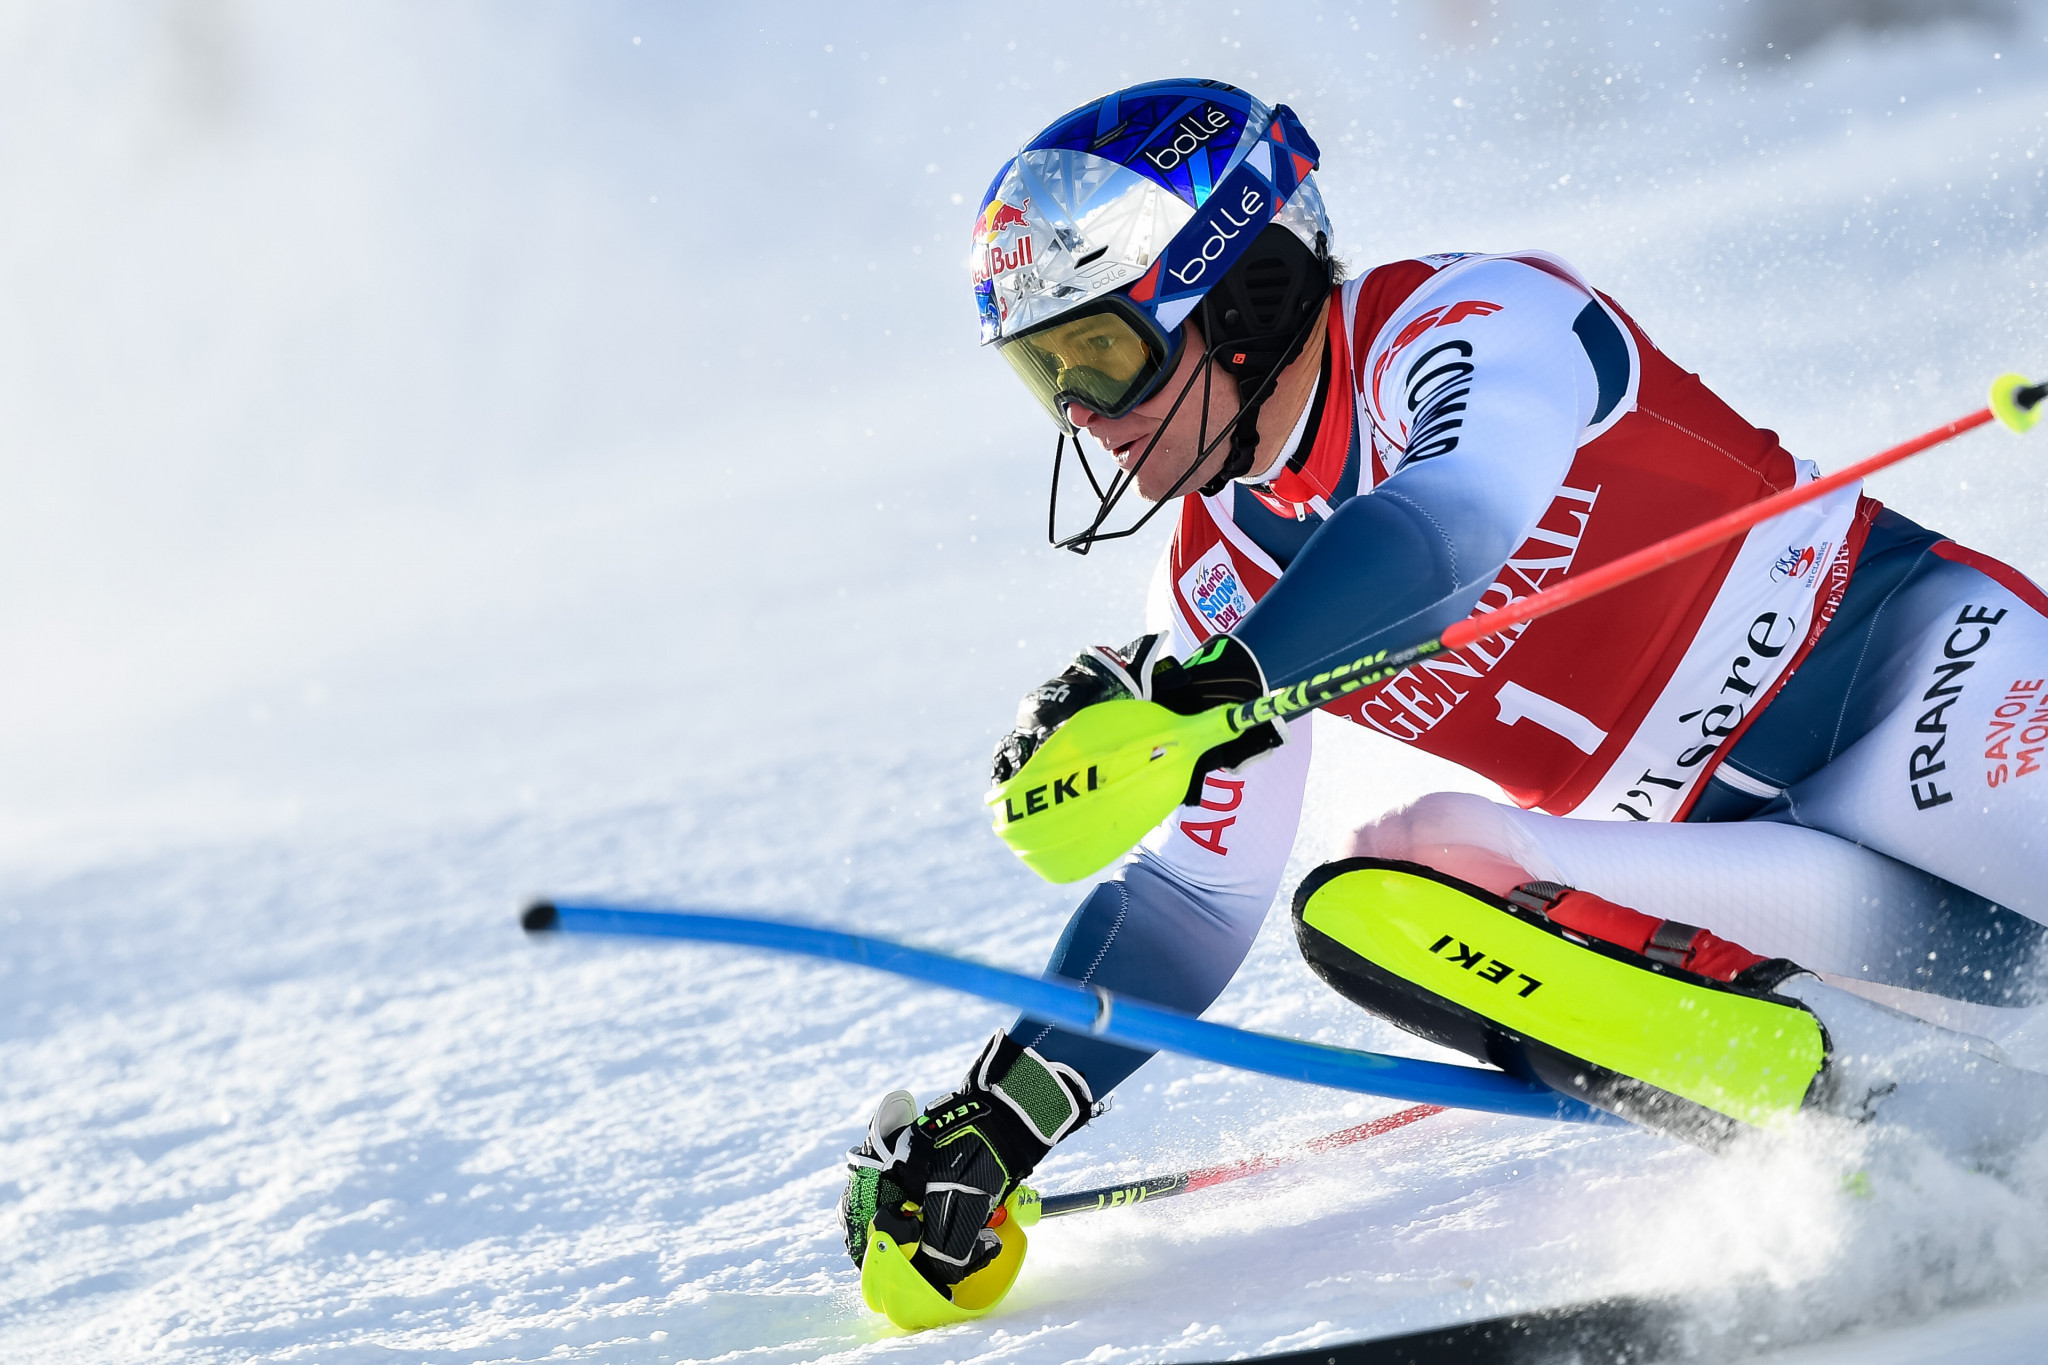 Pinturault delivers home victory in rescheduled slalom at FIS Alpine Skiing World Cup